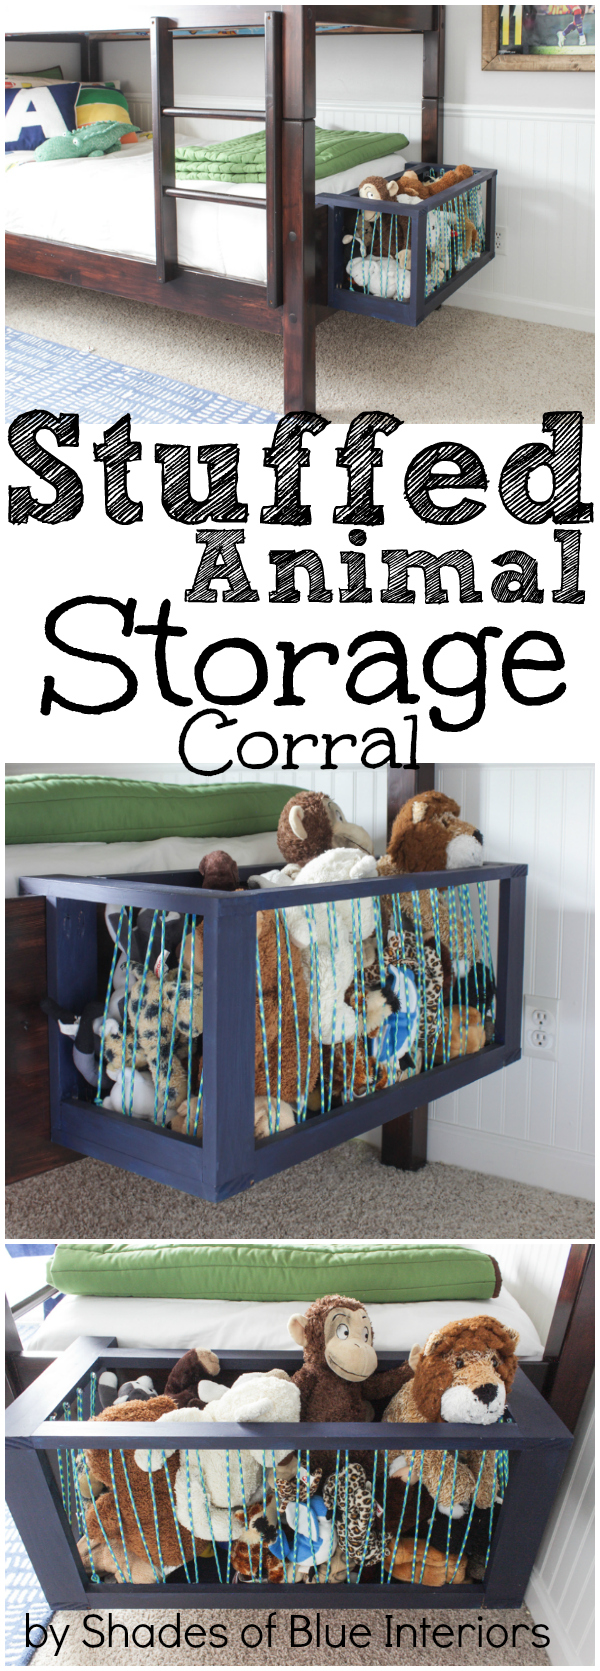 Stuffed Animal Storage Corral